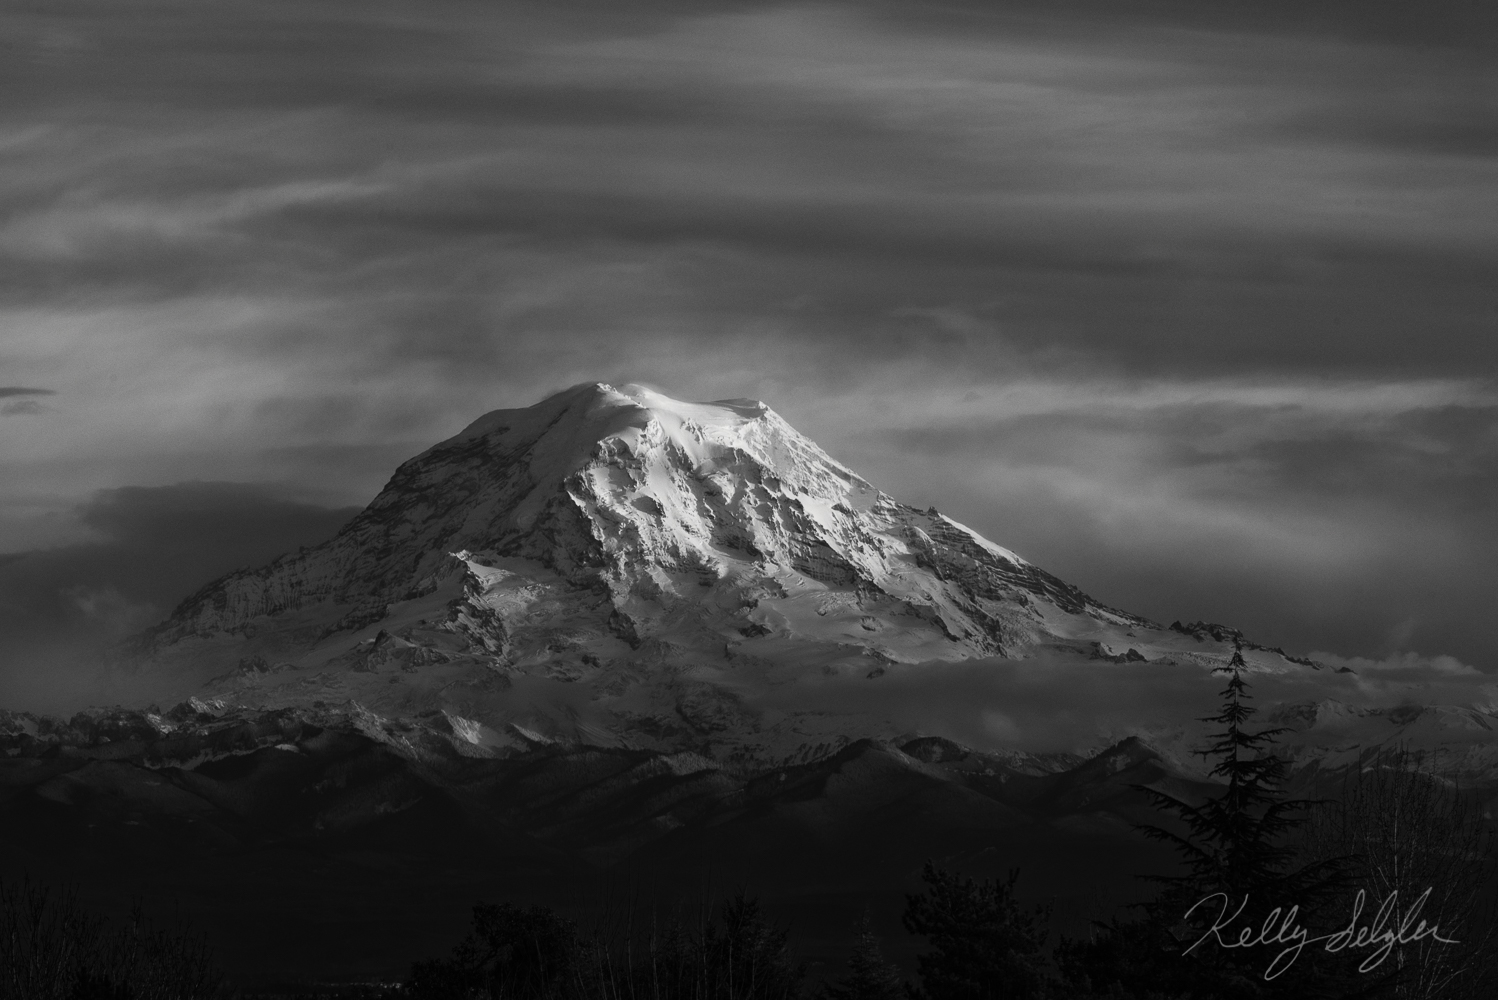 Taken from my neighborhood in Tacoma, theday's last light on Mt. Rainier was magical.